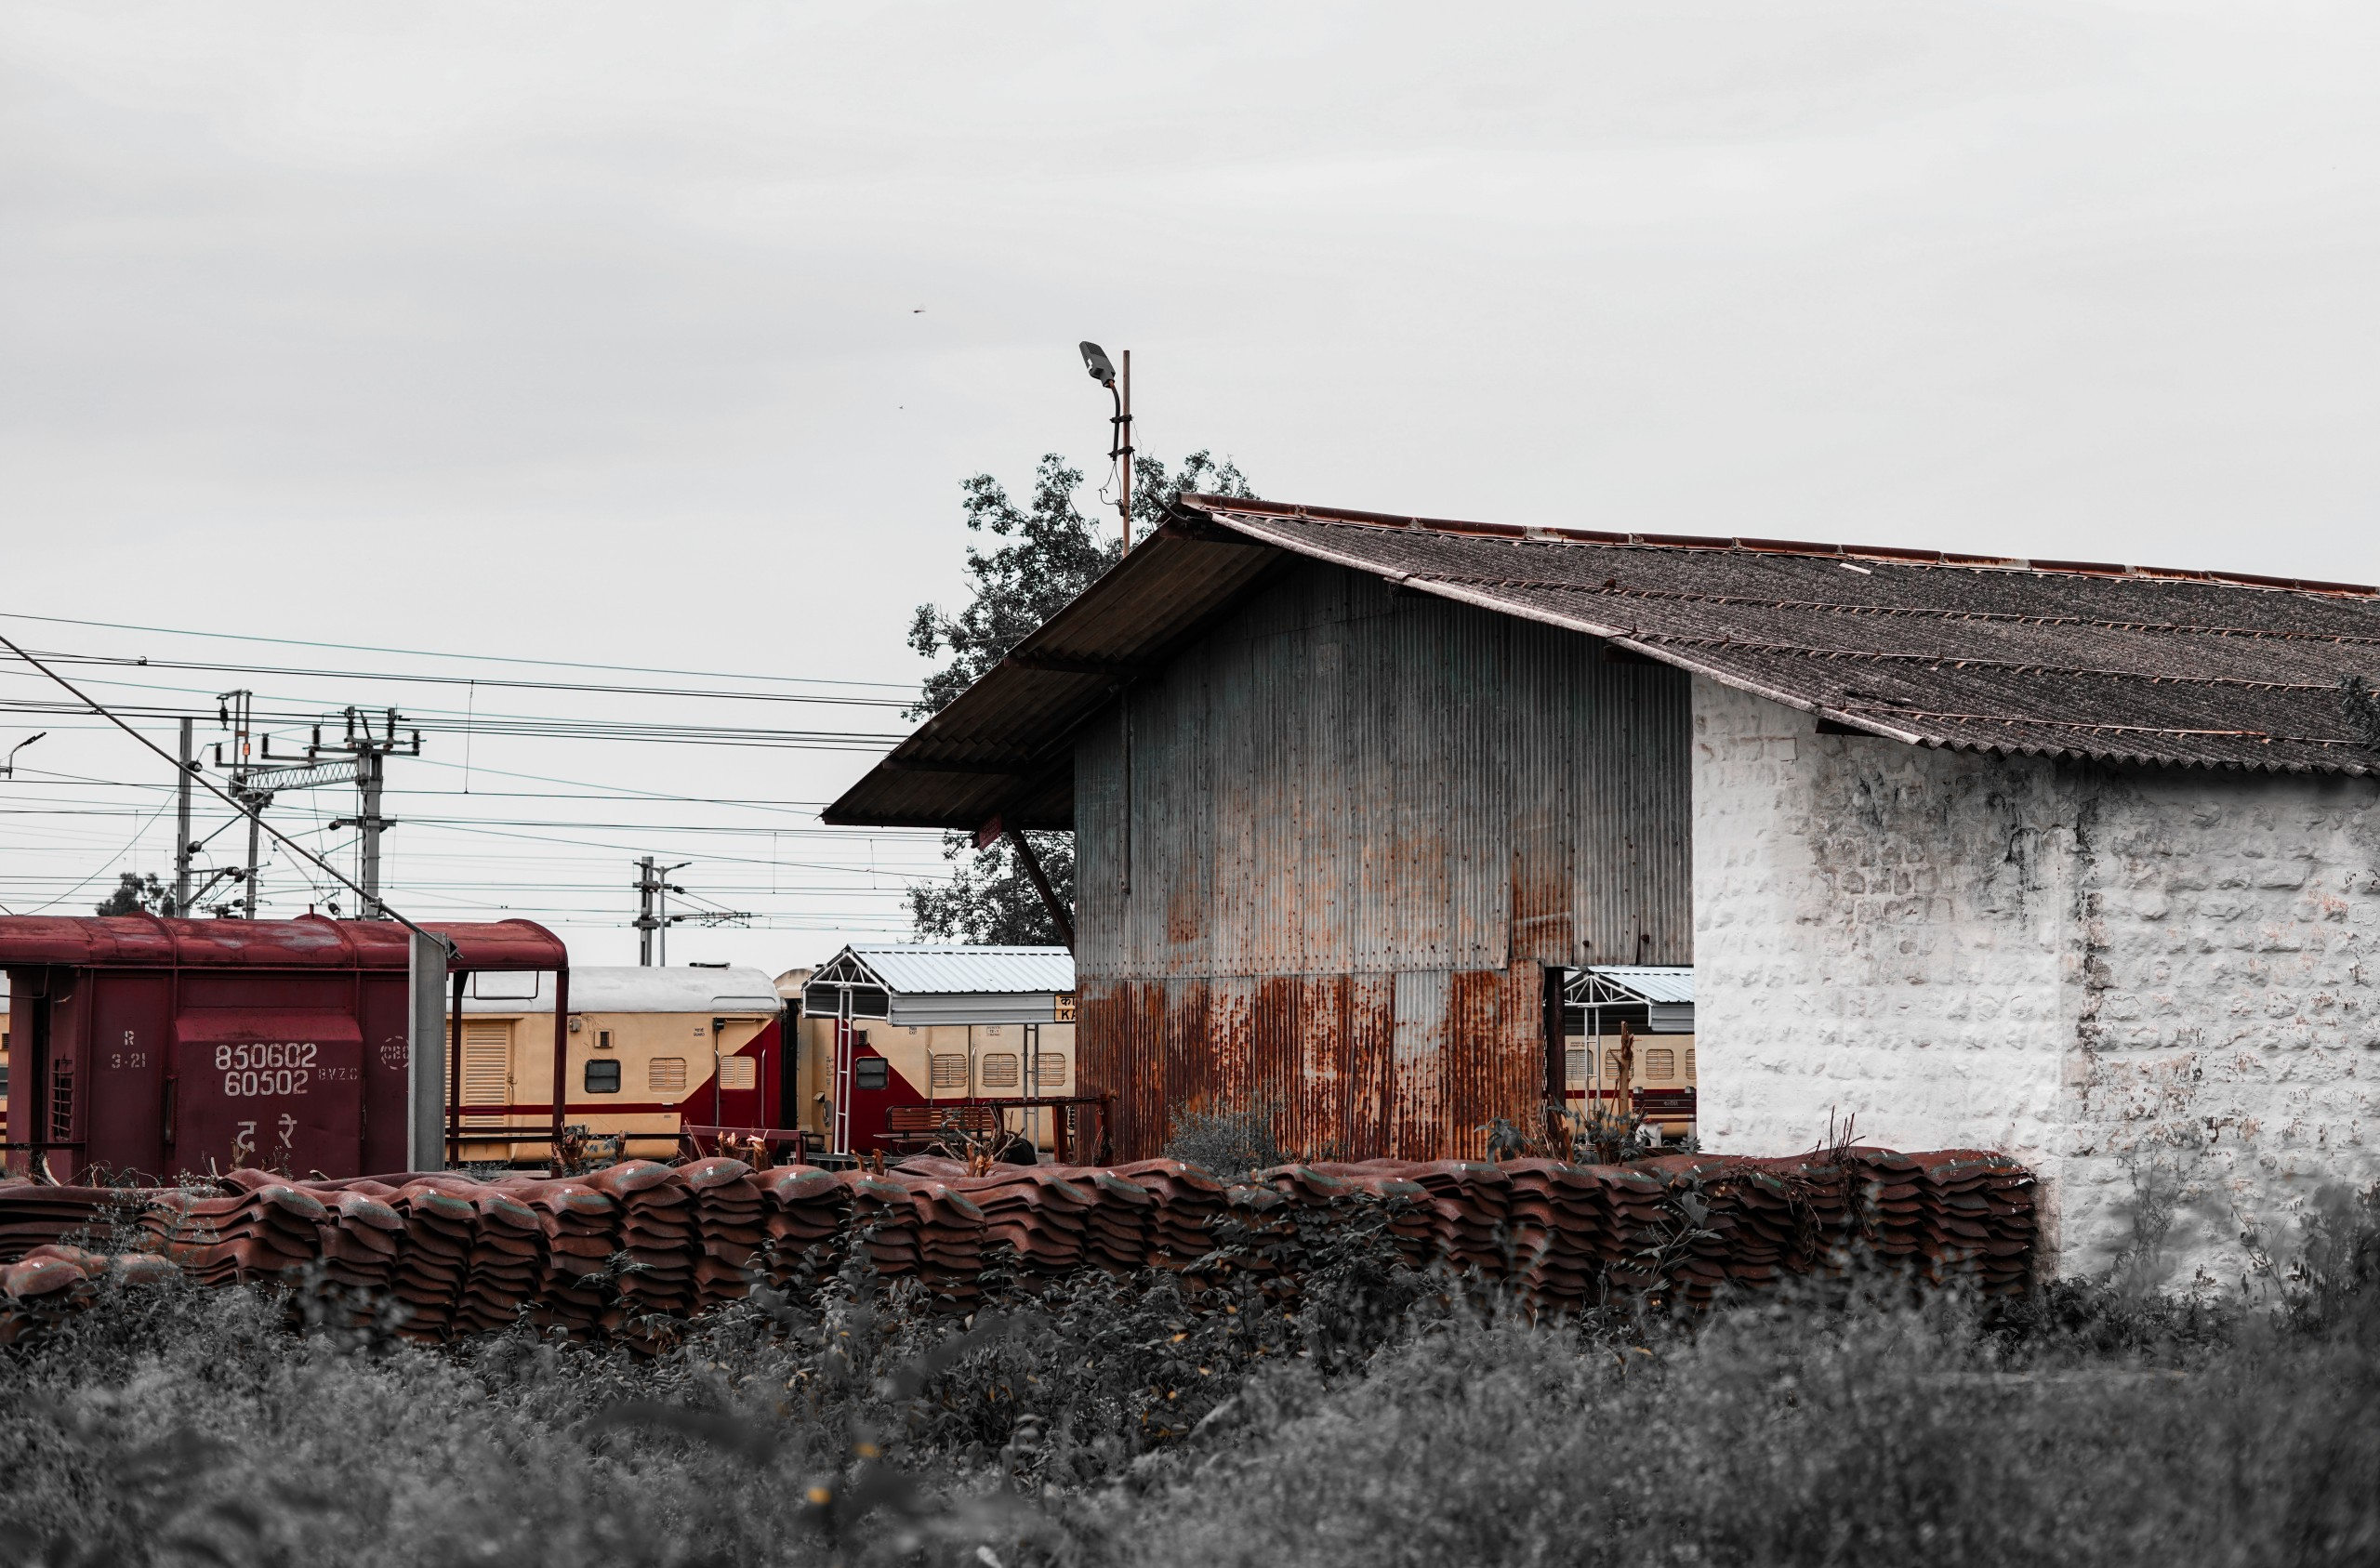 An Old Railway Station